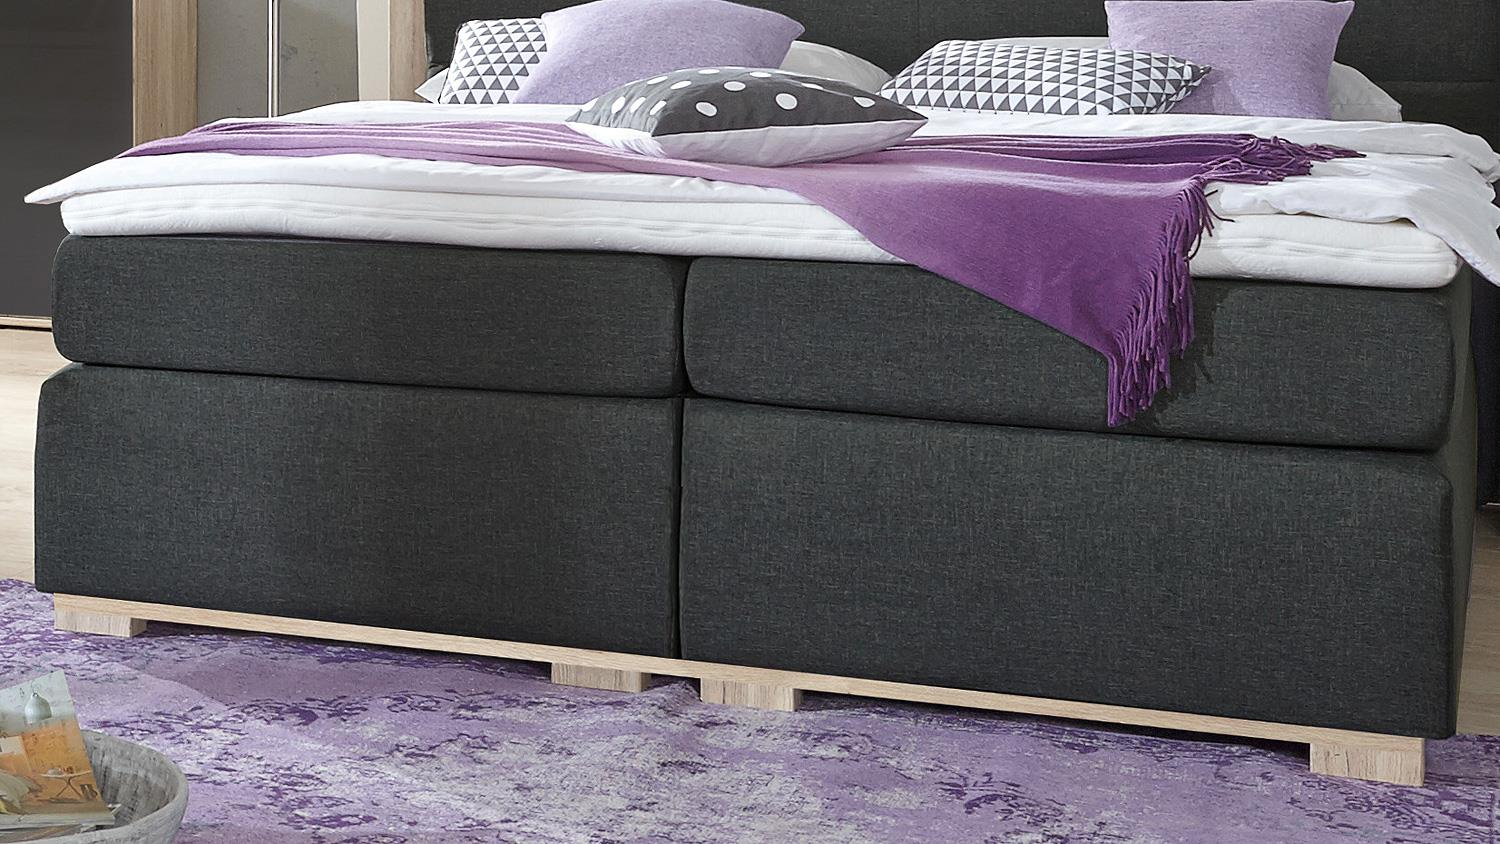 boxspringbett ohio bett f r schlafzimmer anthrazit san remo eiche 180. Black Bedroom Furniture Sets. Home Design Ideas